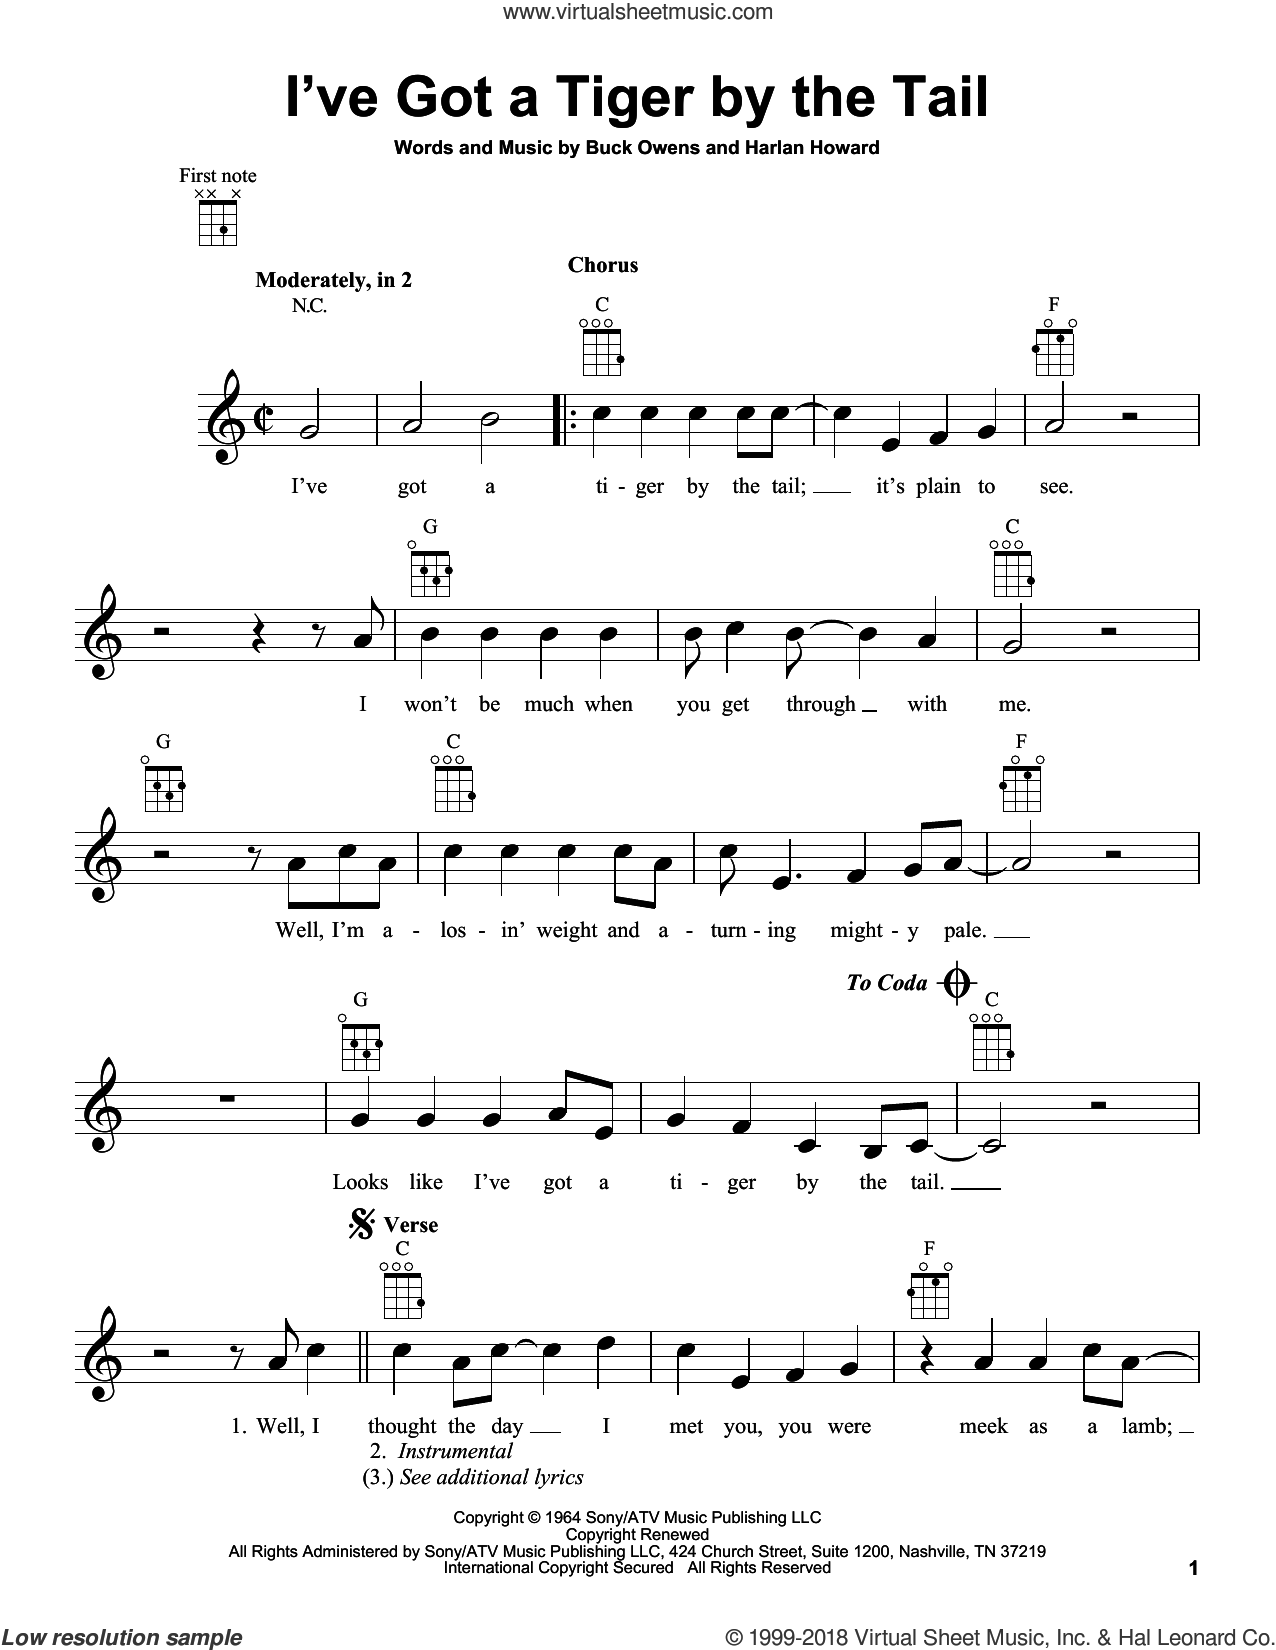 I've Got A Tiger By The Tail sheet music for ukulele by Harlan Howard